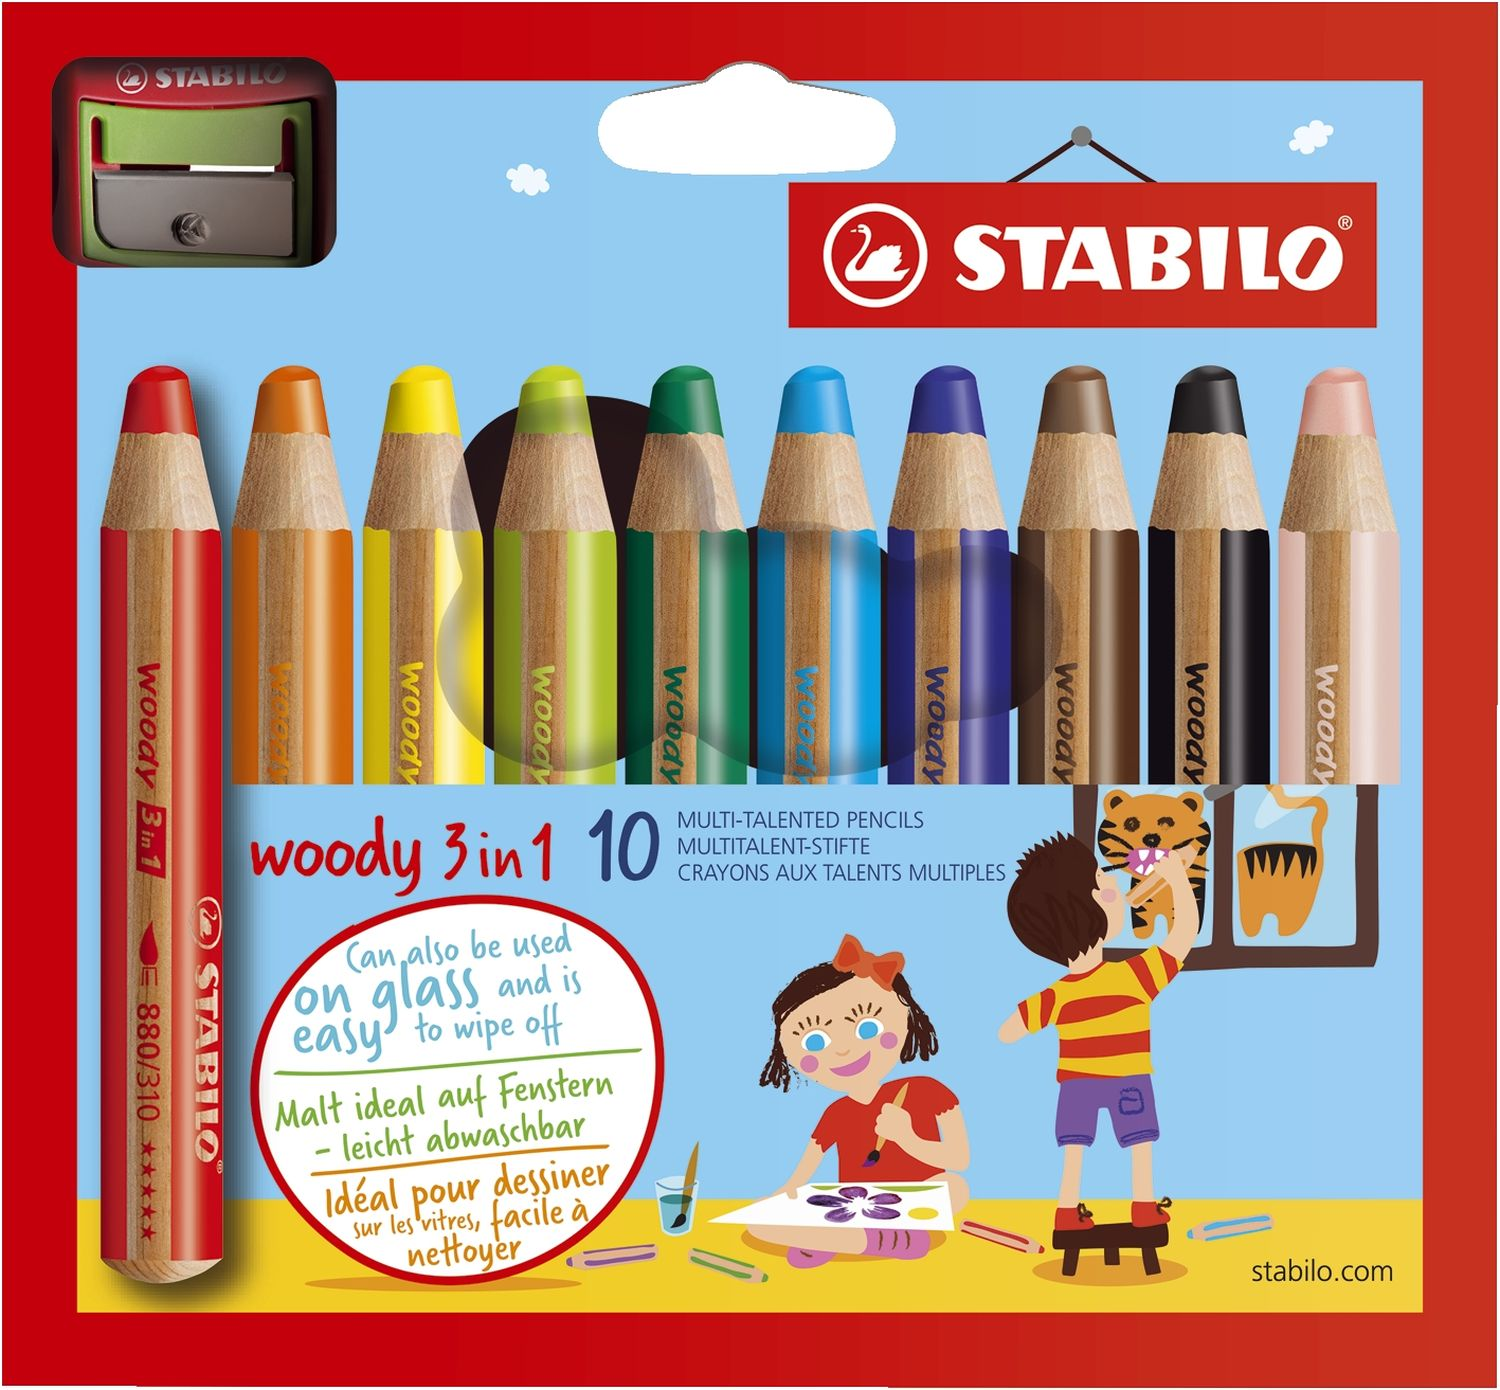 Stabilo woody Multitalentstift, 3 in 1, 10er Karton-Etui mit Spitzer